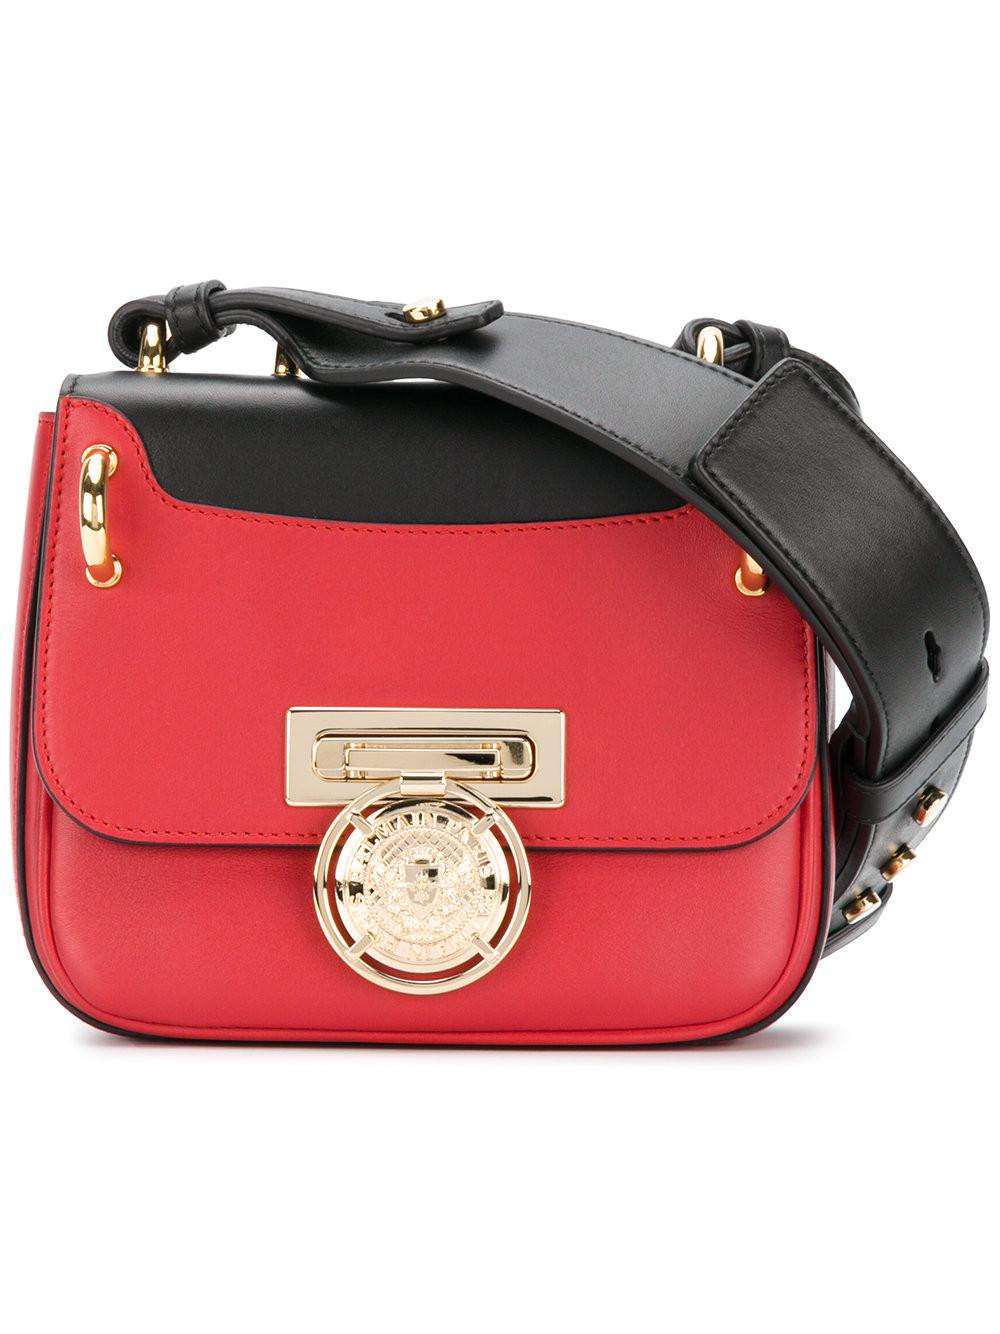 733435318cfd Lyst - Balmain Renaissance 18 Shoulder Bag in Red - Save 42%